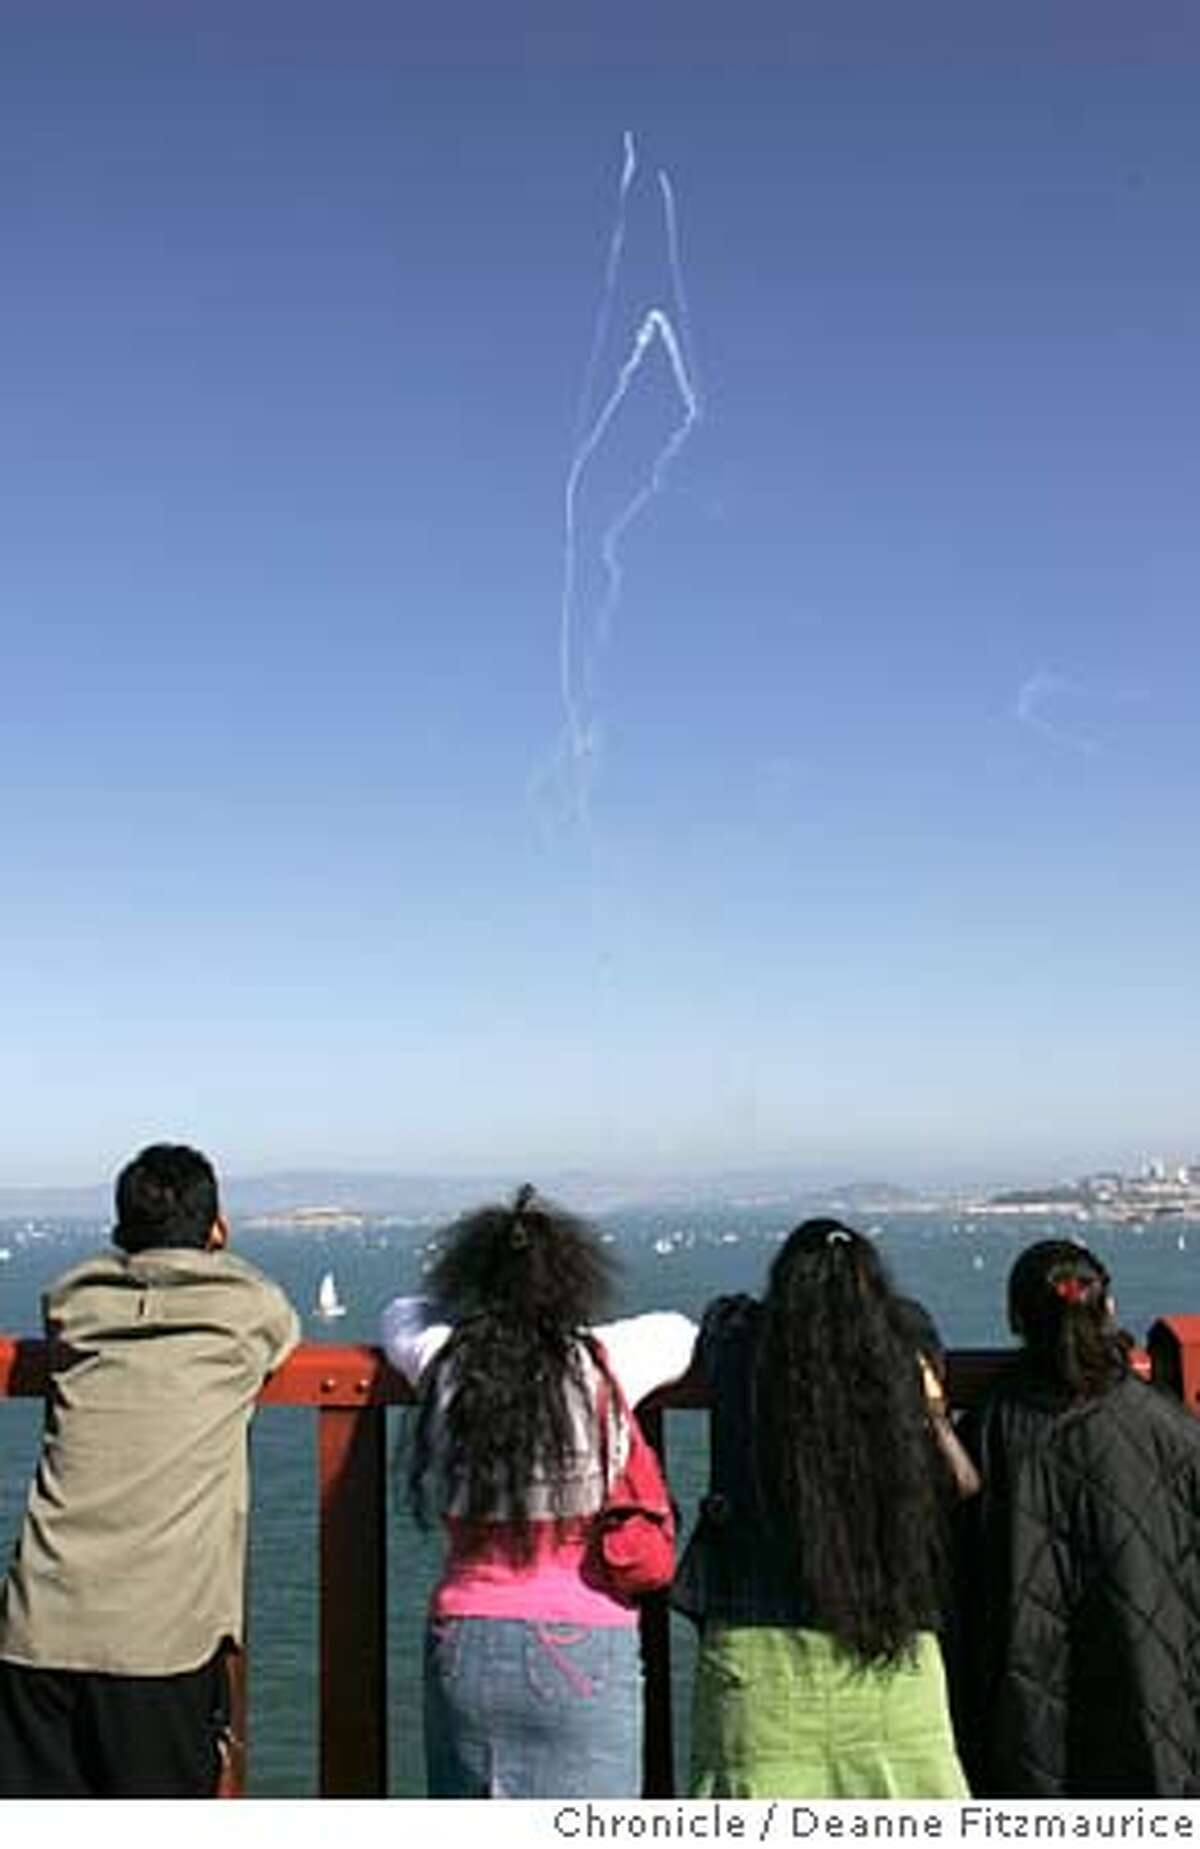 fleetweek_109_df.JPG People line the Golden Gate Bridge to watch the show. The Blue Angles fly over San Francisco Bay. Photographed from the Golden Gate Bridge. Deanne Fitzmaurice / San Francisco Chronicle